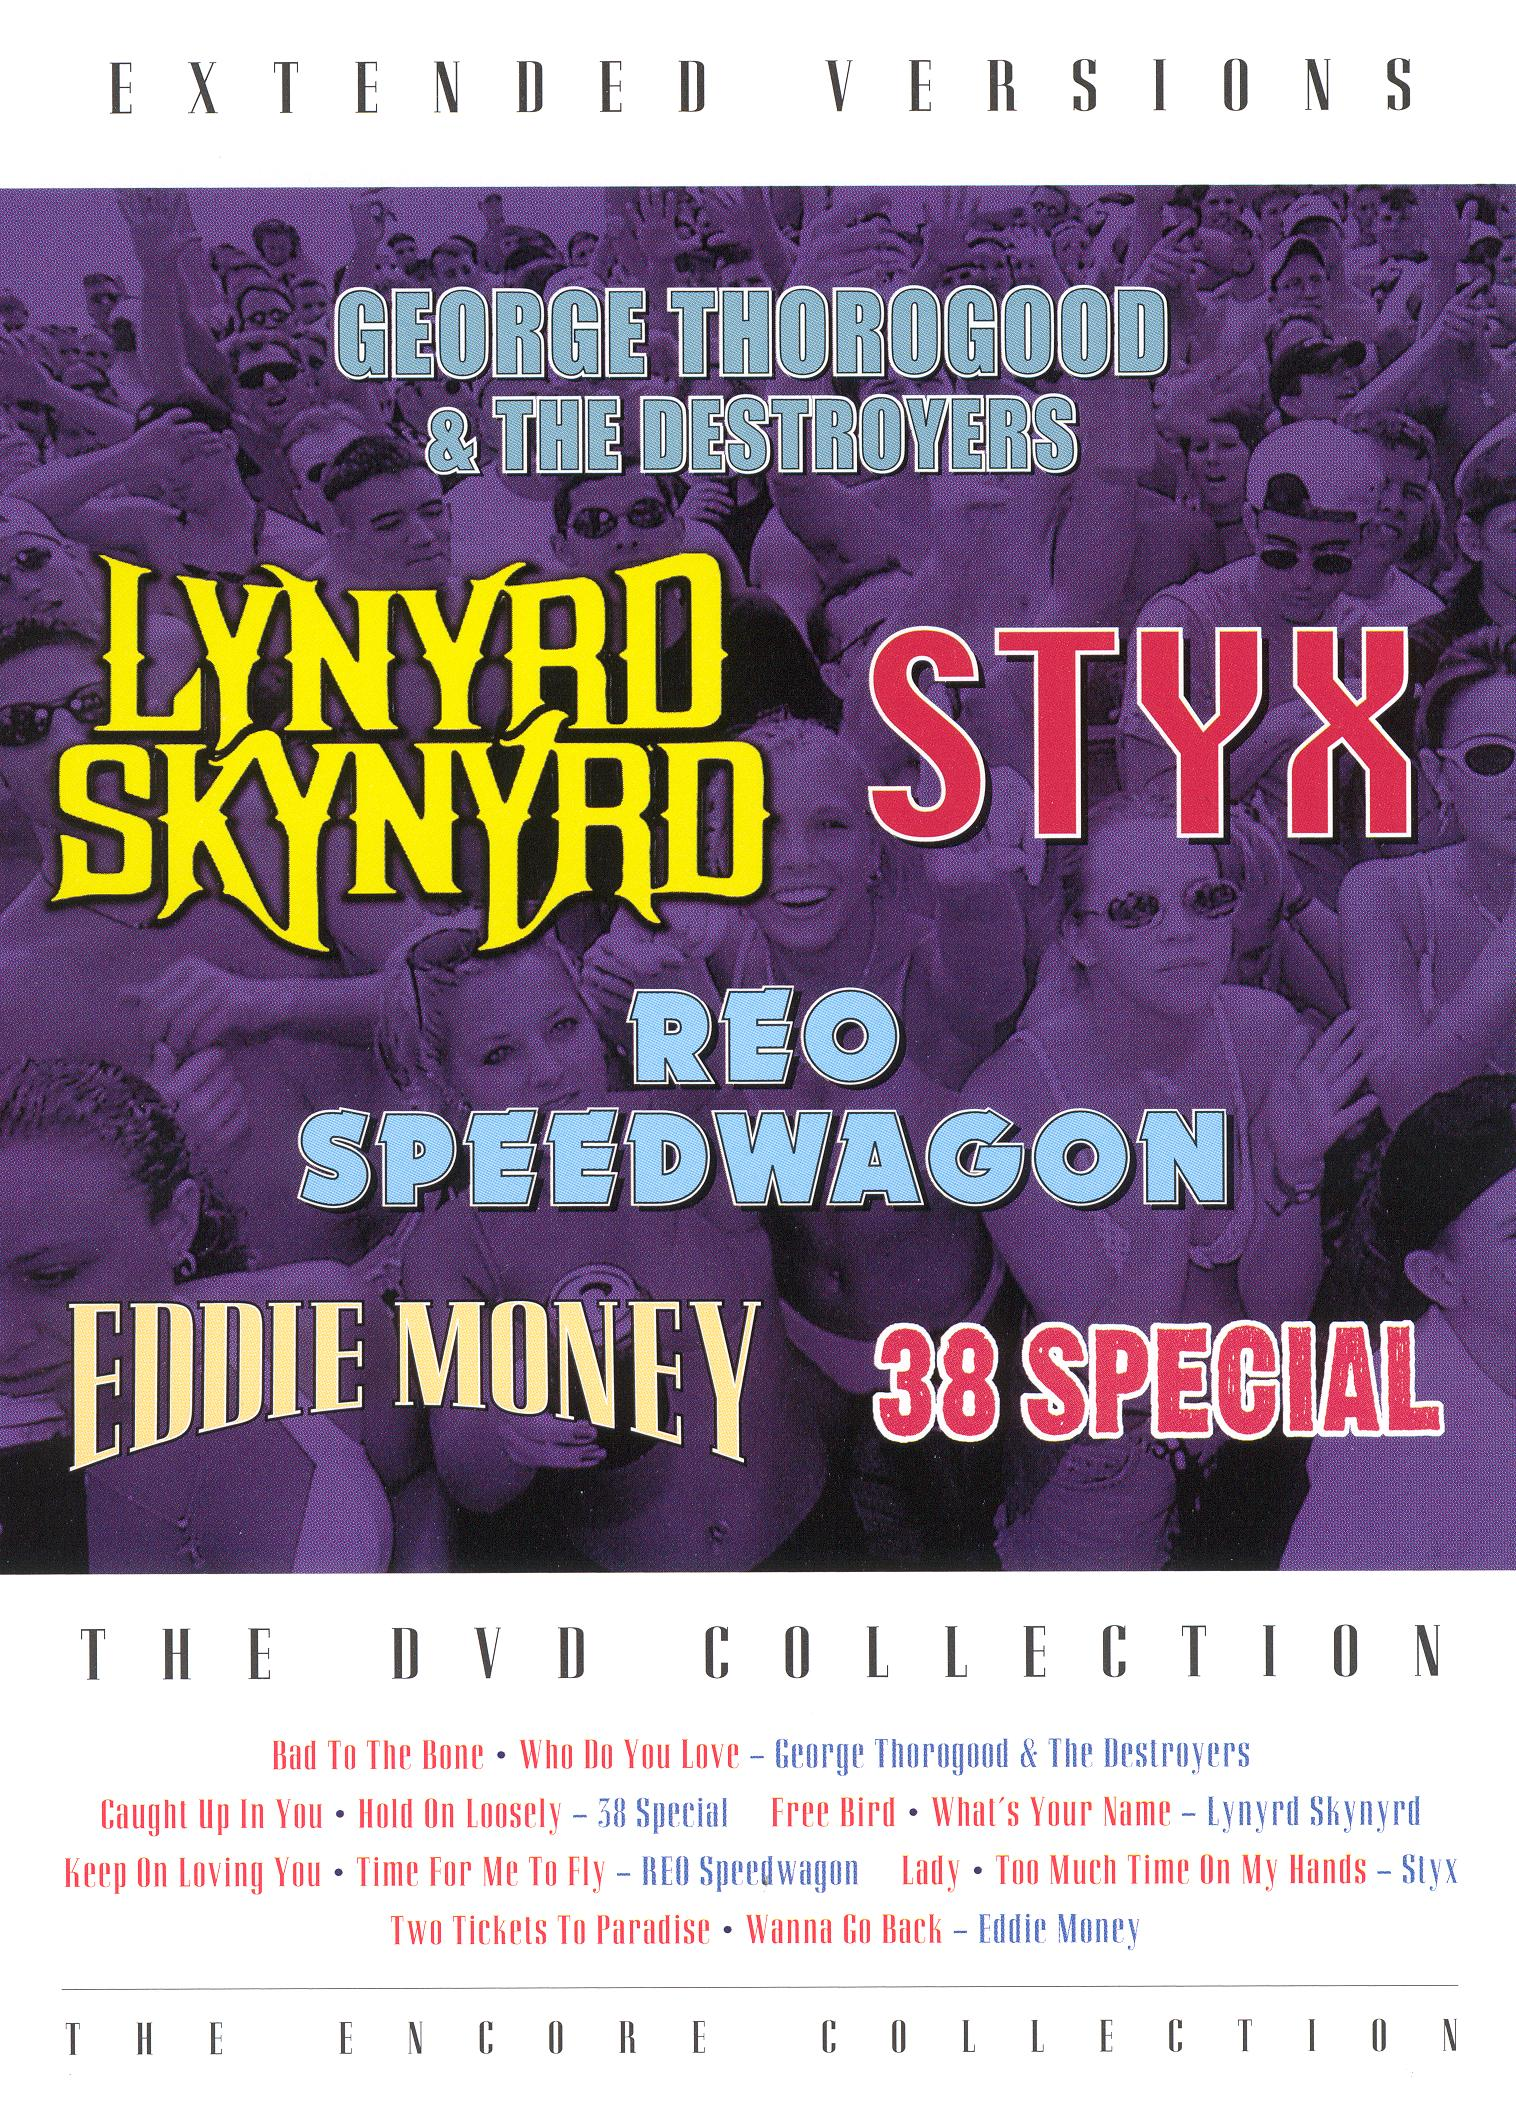 Extended Versions: The DVD Collection